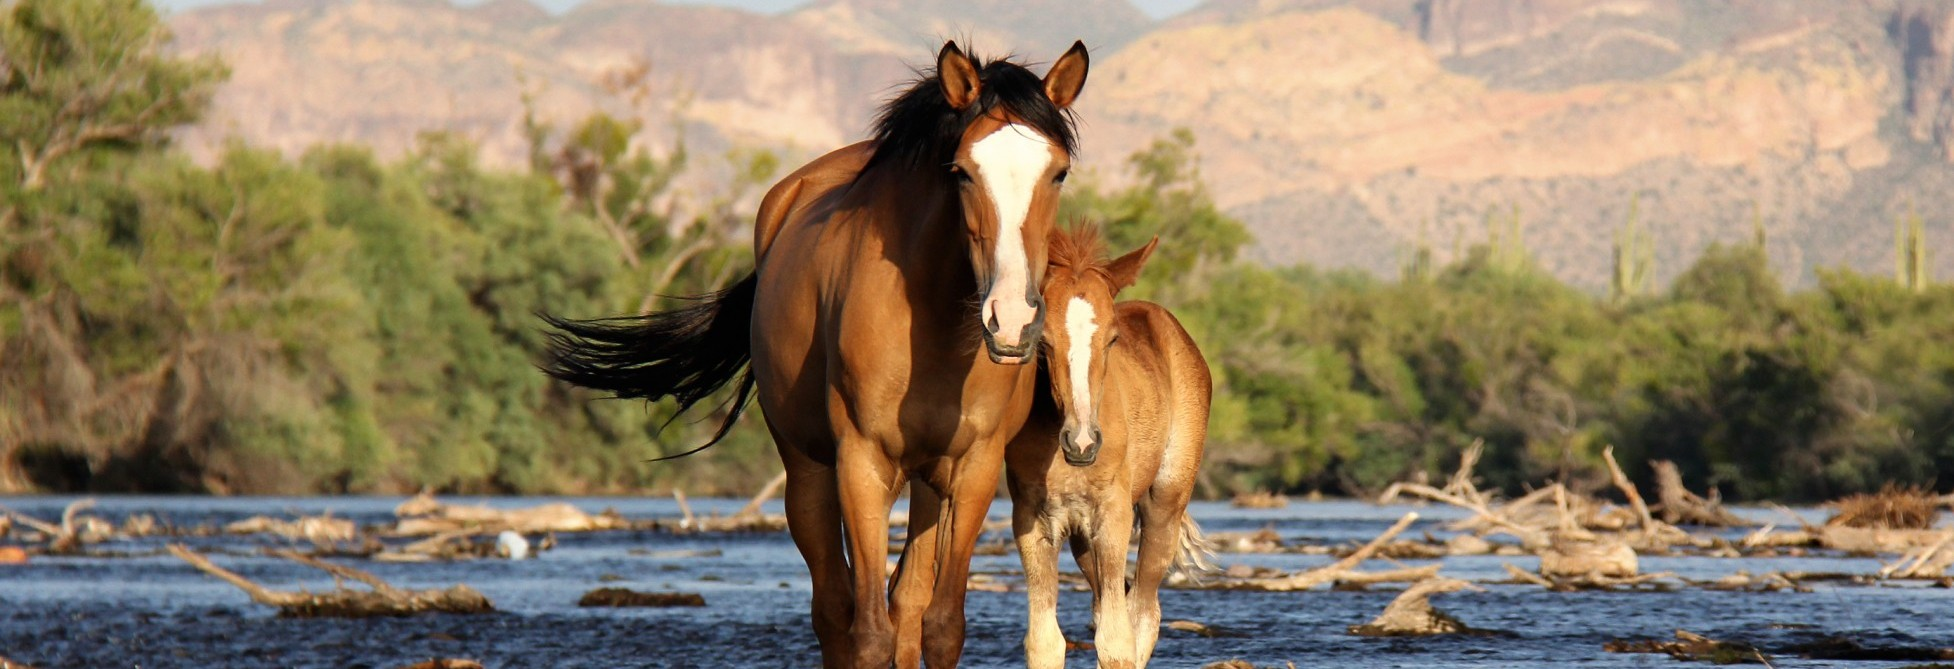 Wild horses in the united states